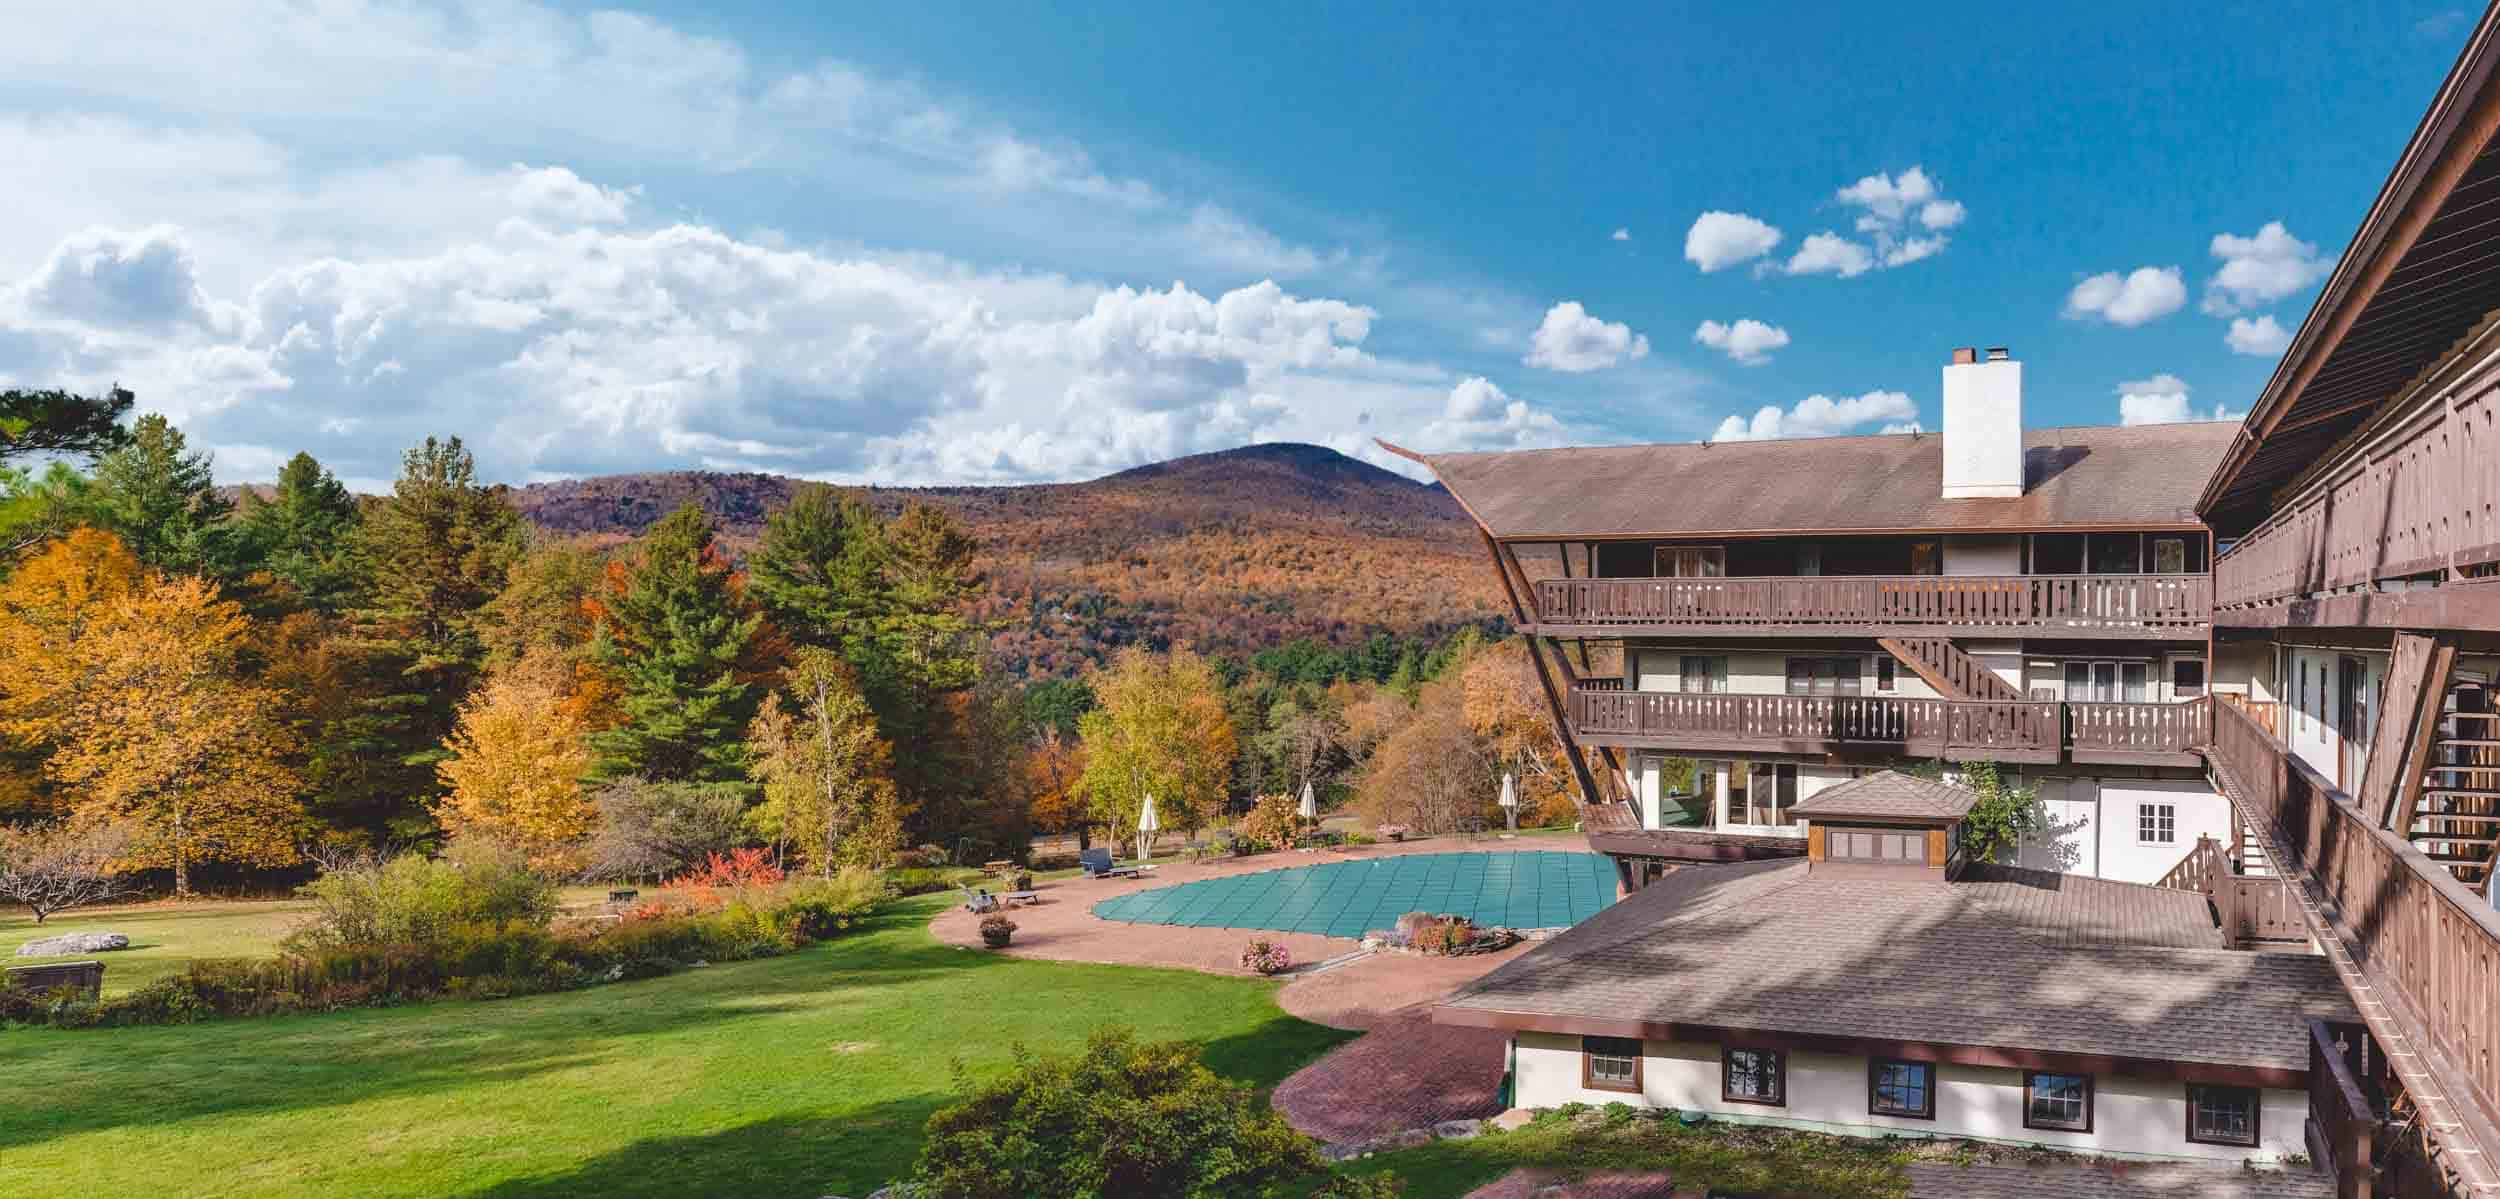 Resort with a pool next to mountains in the fall